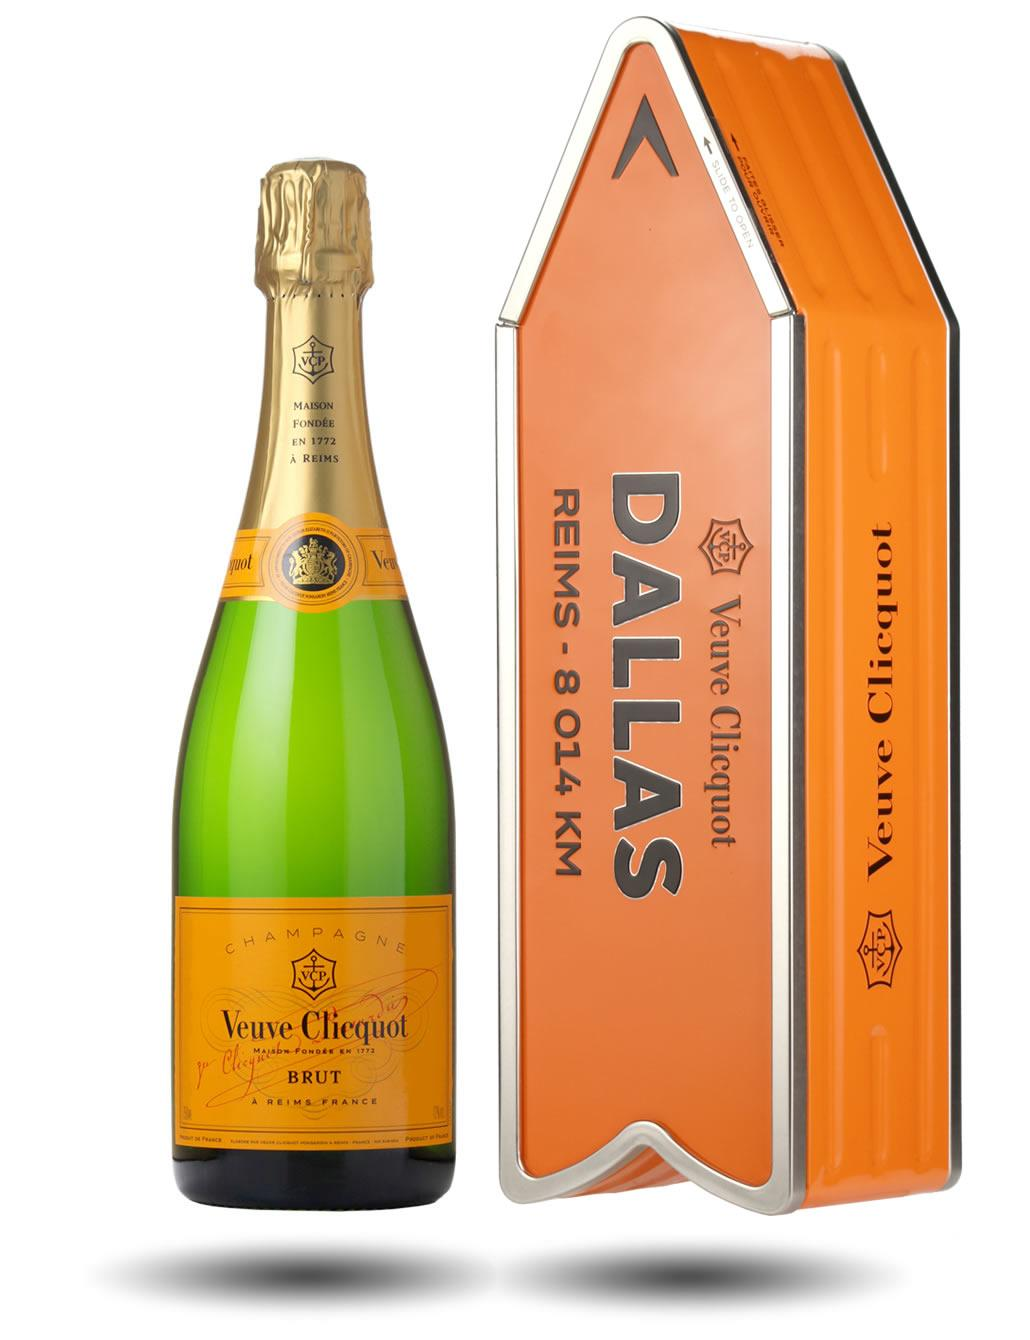 Veuve Clicquot Brut Veuve Clicquot Yellow Label Brut Arrow Tin Dallas Wine